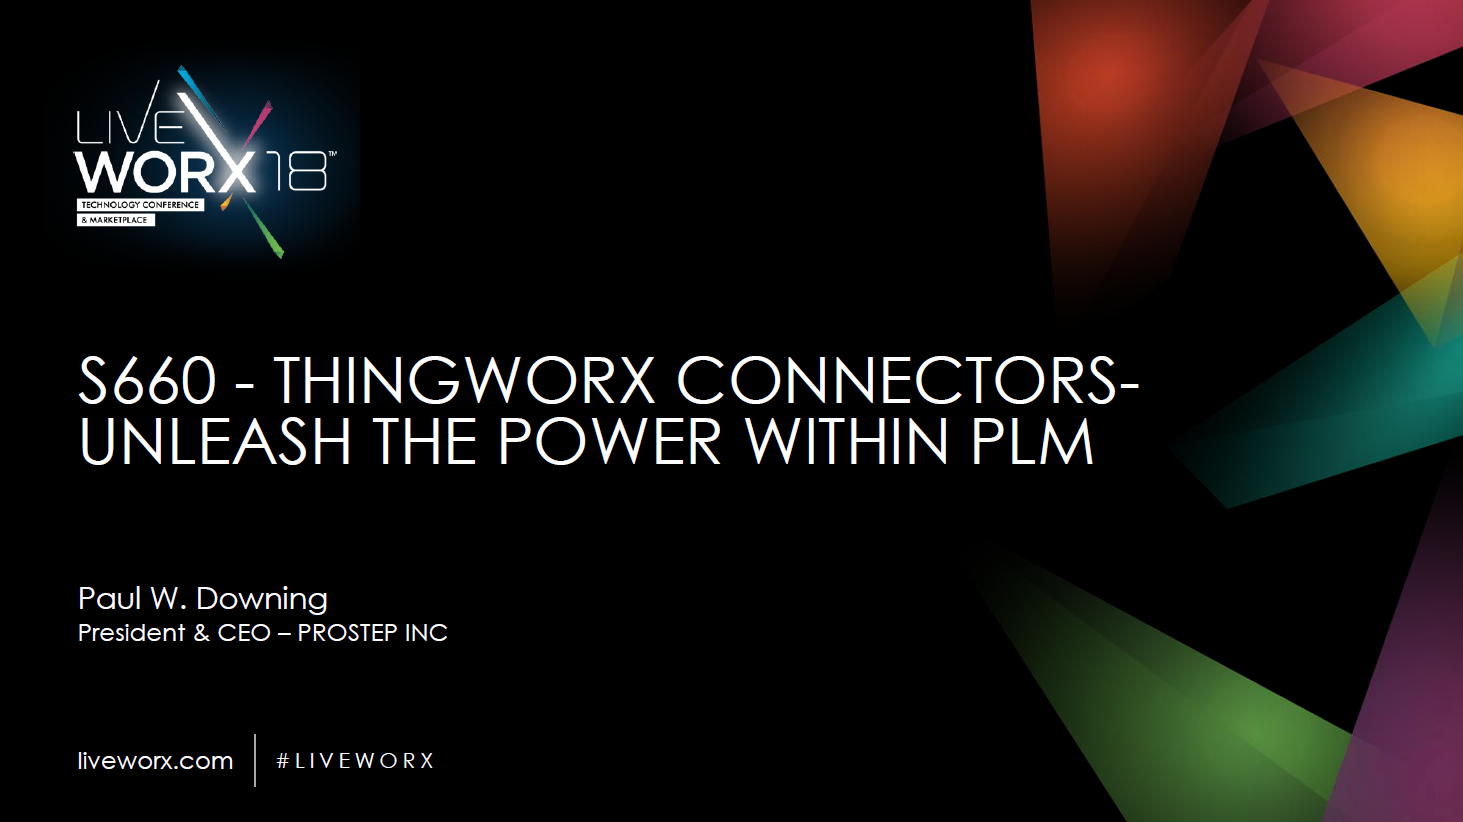 ​ThingWorx Connectors - Unleash the Power within PLM Presentation